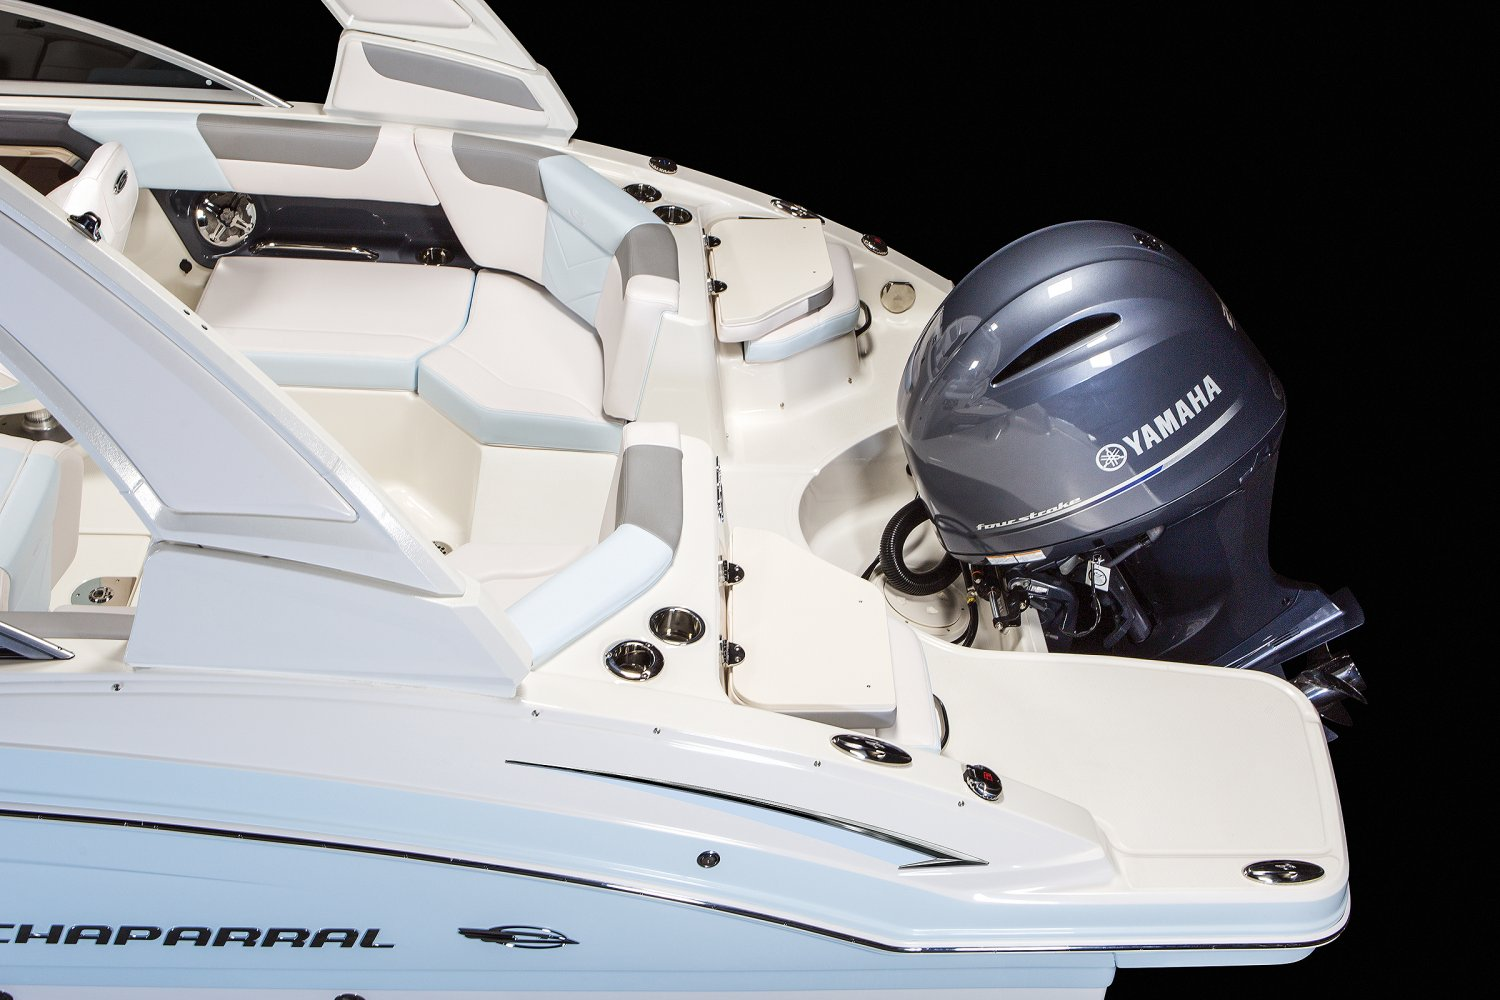 Image of a Sea Foam Green Wide Band 2020 230   Chaparral Boats. Our track record speaks for itself. Seeing Chaparral on top when it comes to performance, styling, value and innovation should come as no surprise... we've won more than 30 awards for product excellence, a feat few can claim.